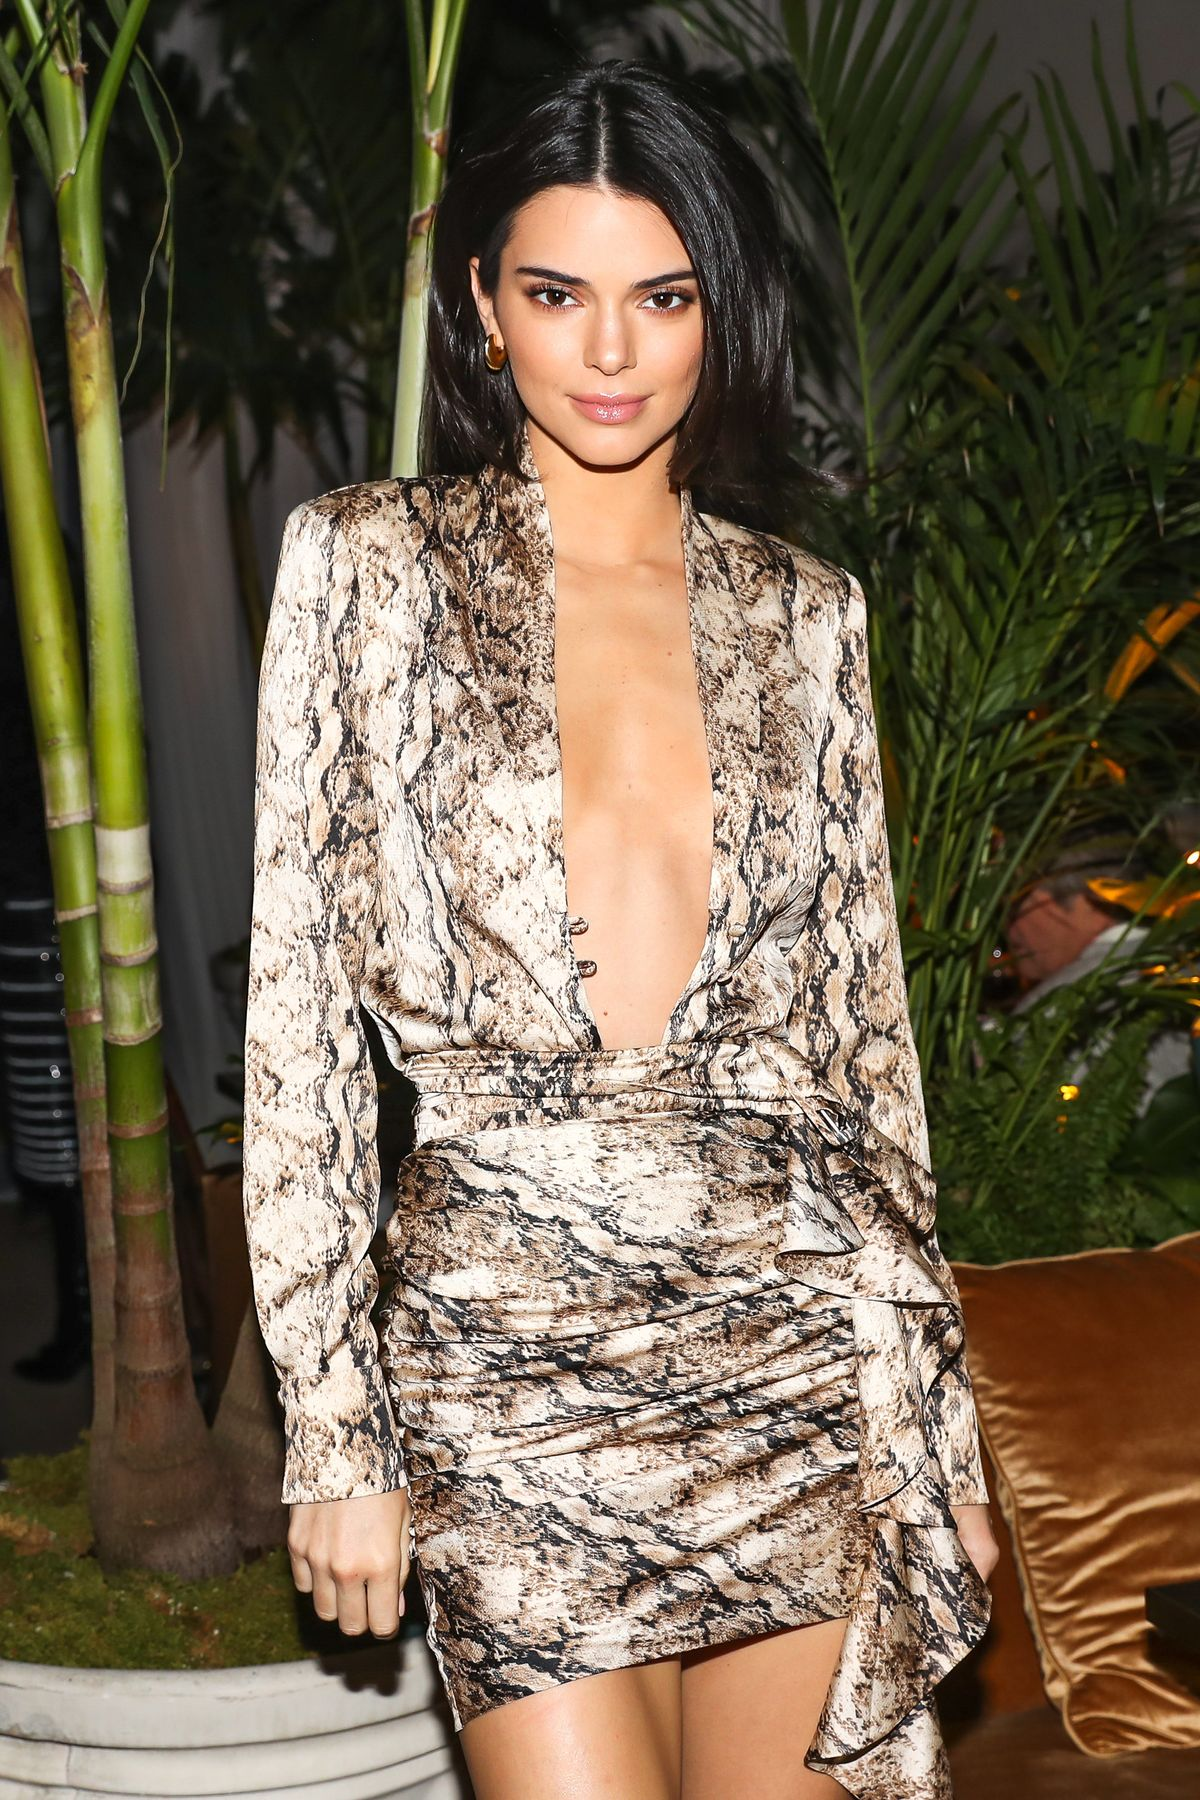 Kendall Jenner Wants to Cut All Her Hair Off